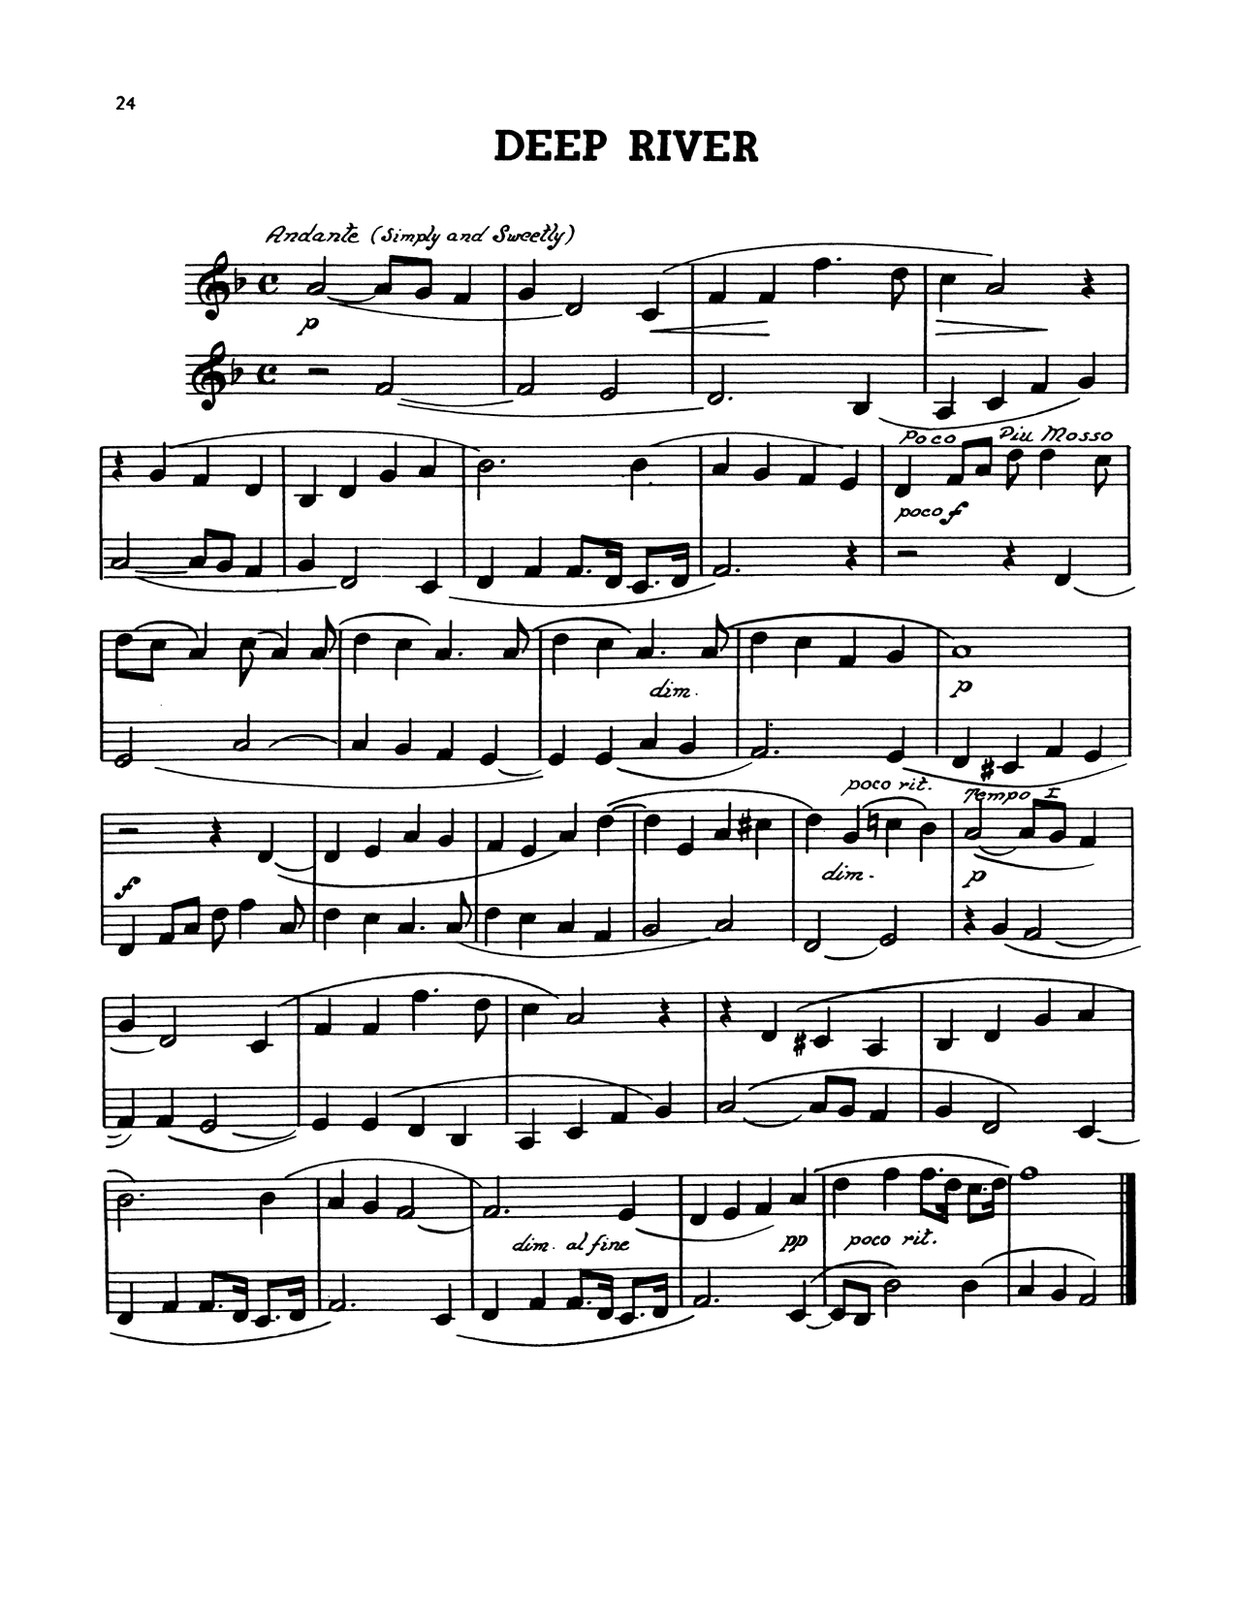 Cori, Melody Duets for Two Trumpets 1-p24